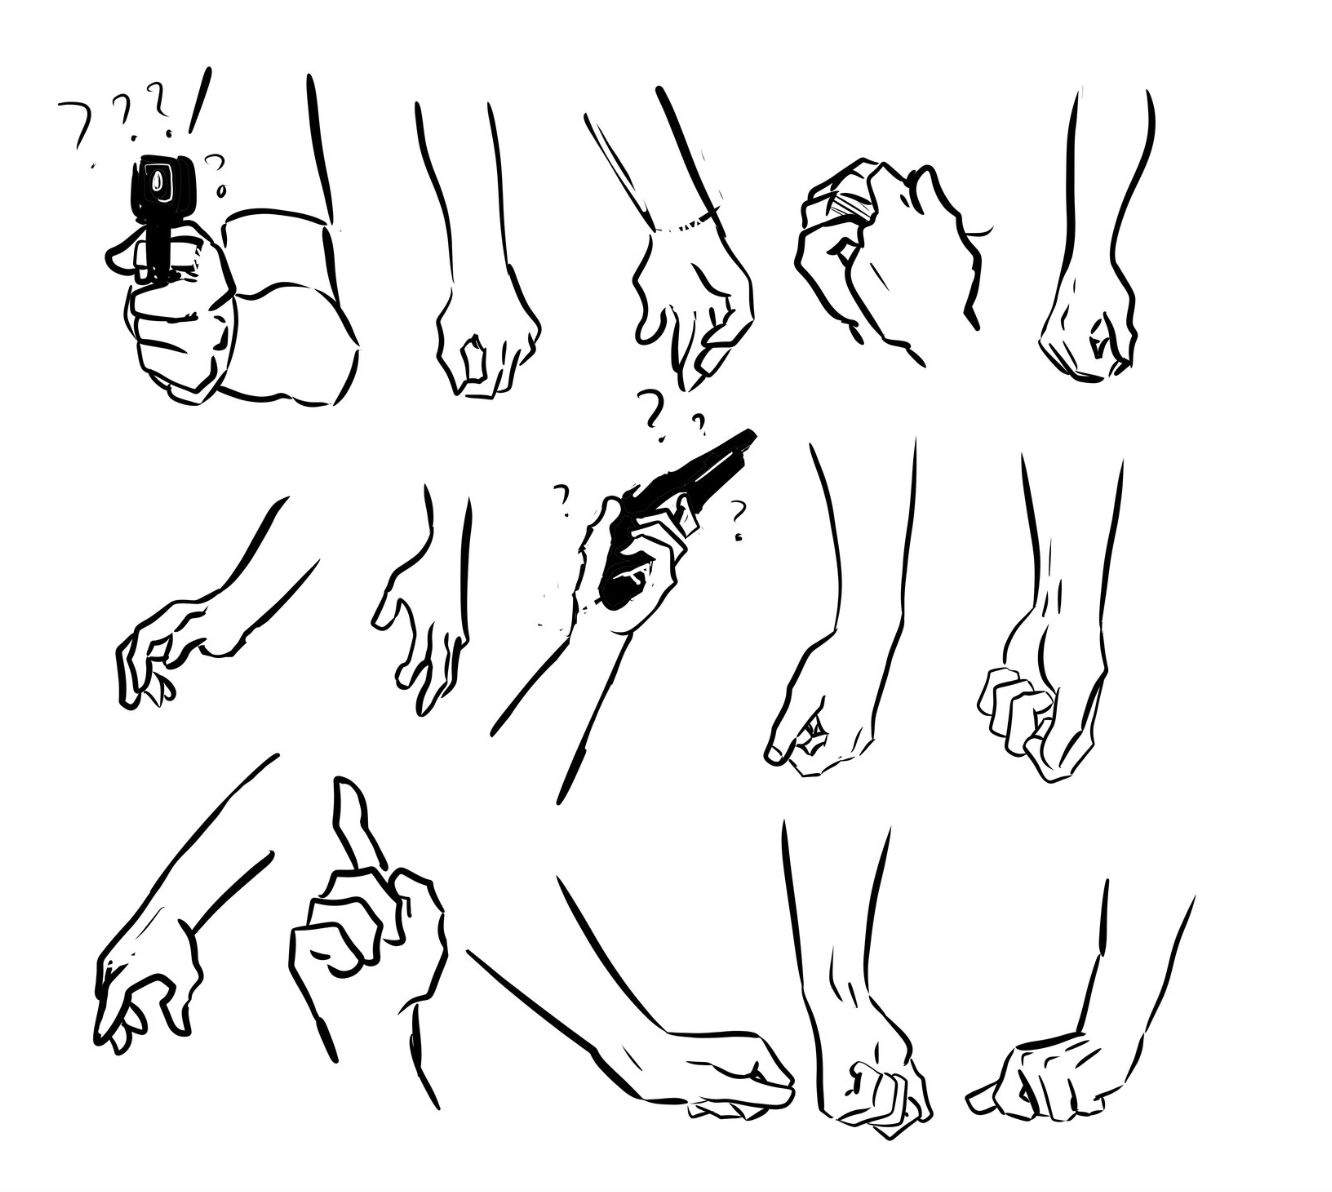 becky jewell hands tutorial hand art reference.png